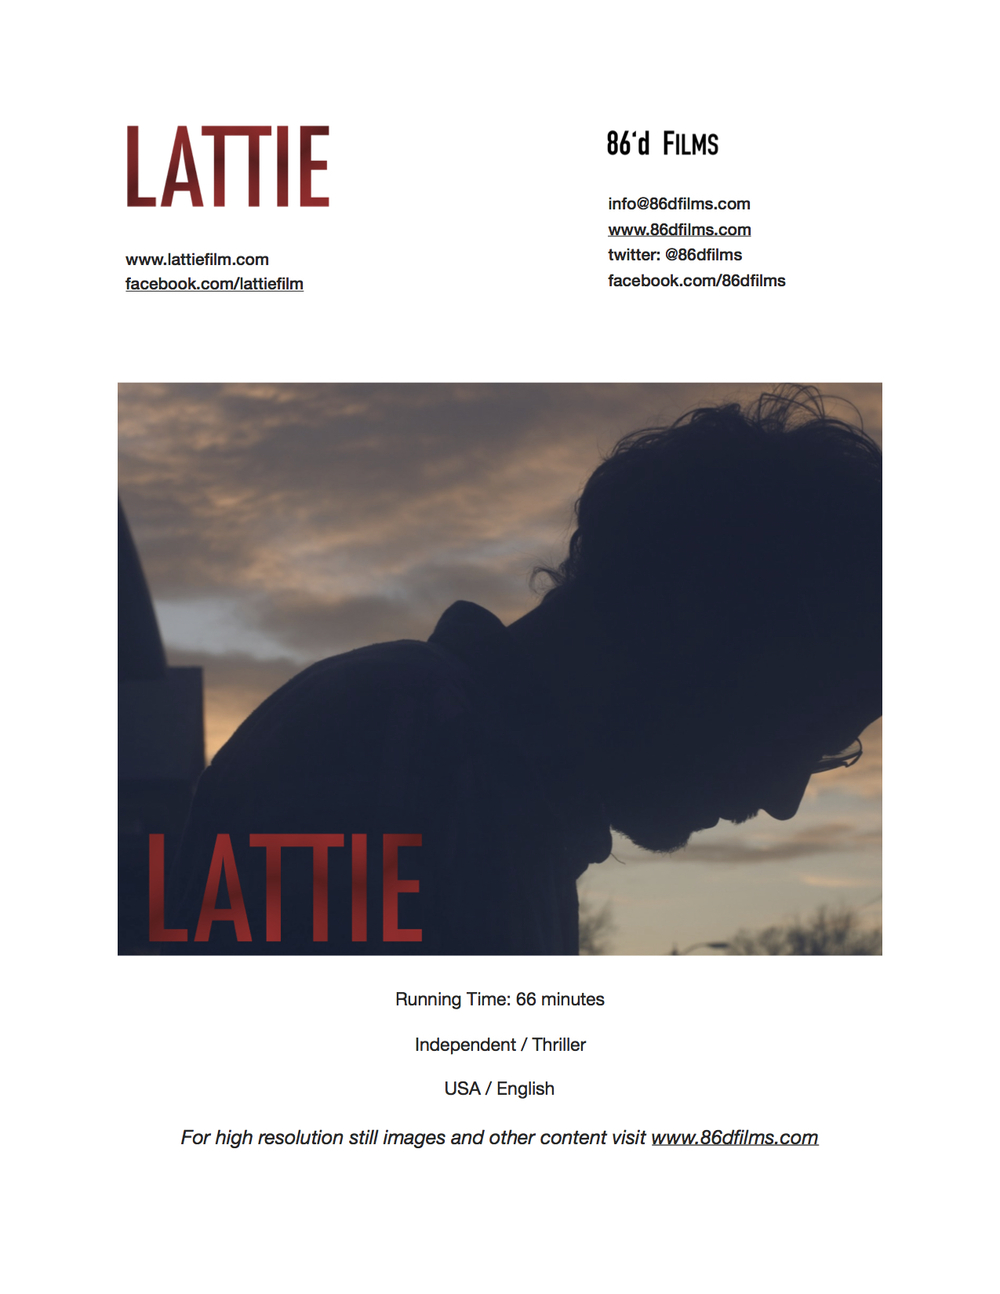 LATTIE press kit.jpg